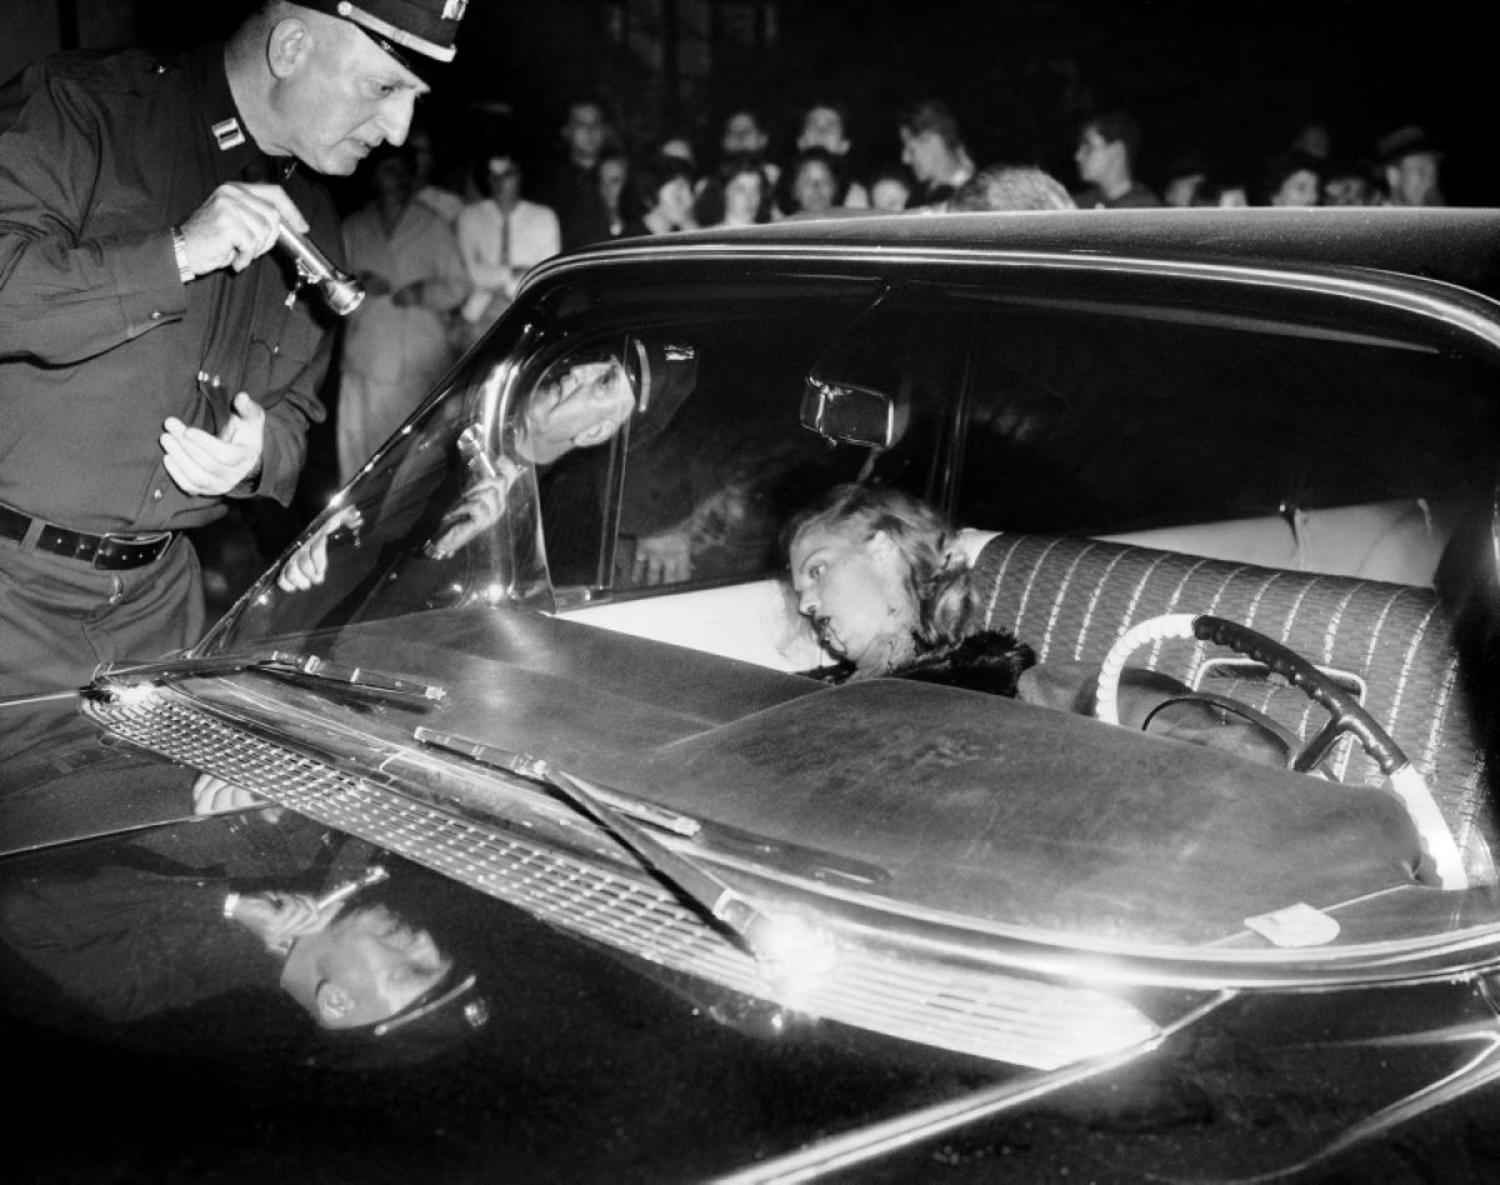 Mob Moll, 1959: In the end, the mob moll suffered her own unhappily ever after when she was found shot to death in the front seat of a black Cadillac with mobster Little Augie Pisano in 1959.